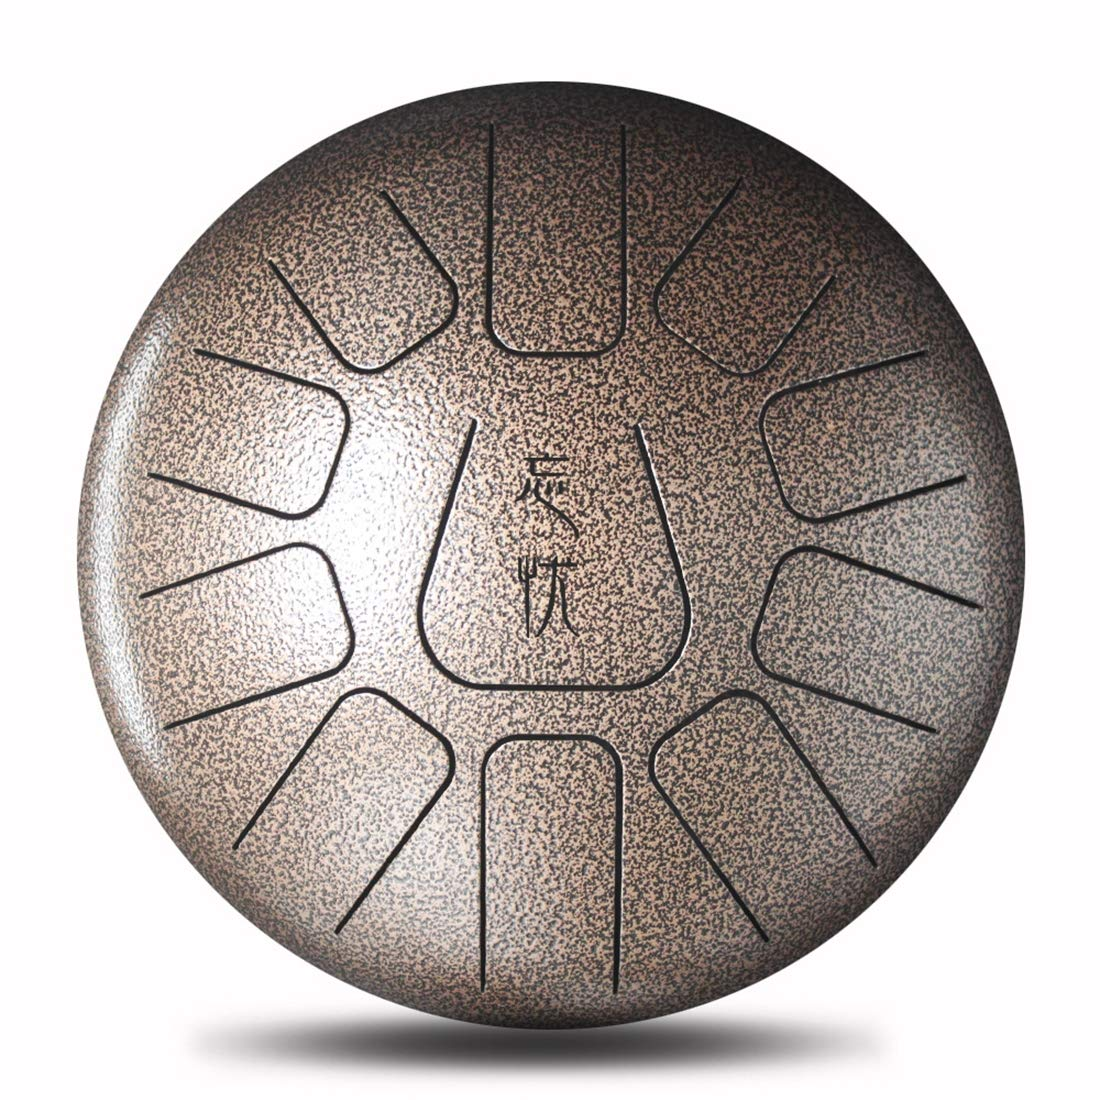 LLC-CLAYMORE 12'' 11 Notes Chakra Drum, Professional Harmonic Steel Slit Tongue Handpan Drum for Sound Healing, Meditation, or Yoga, Includes Rubber Mallets & Bag,Brown